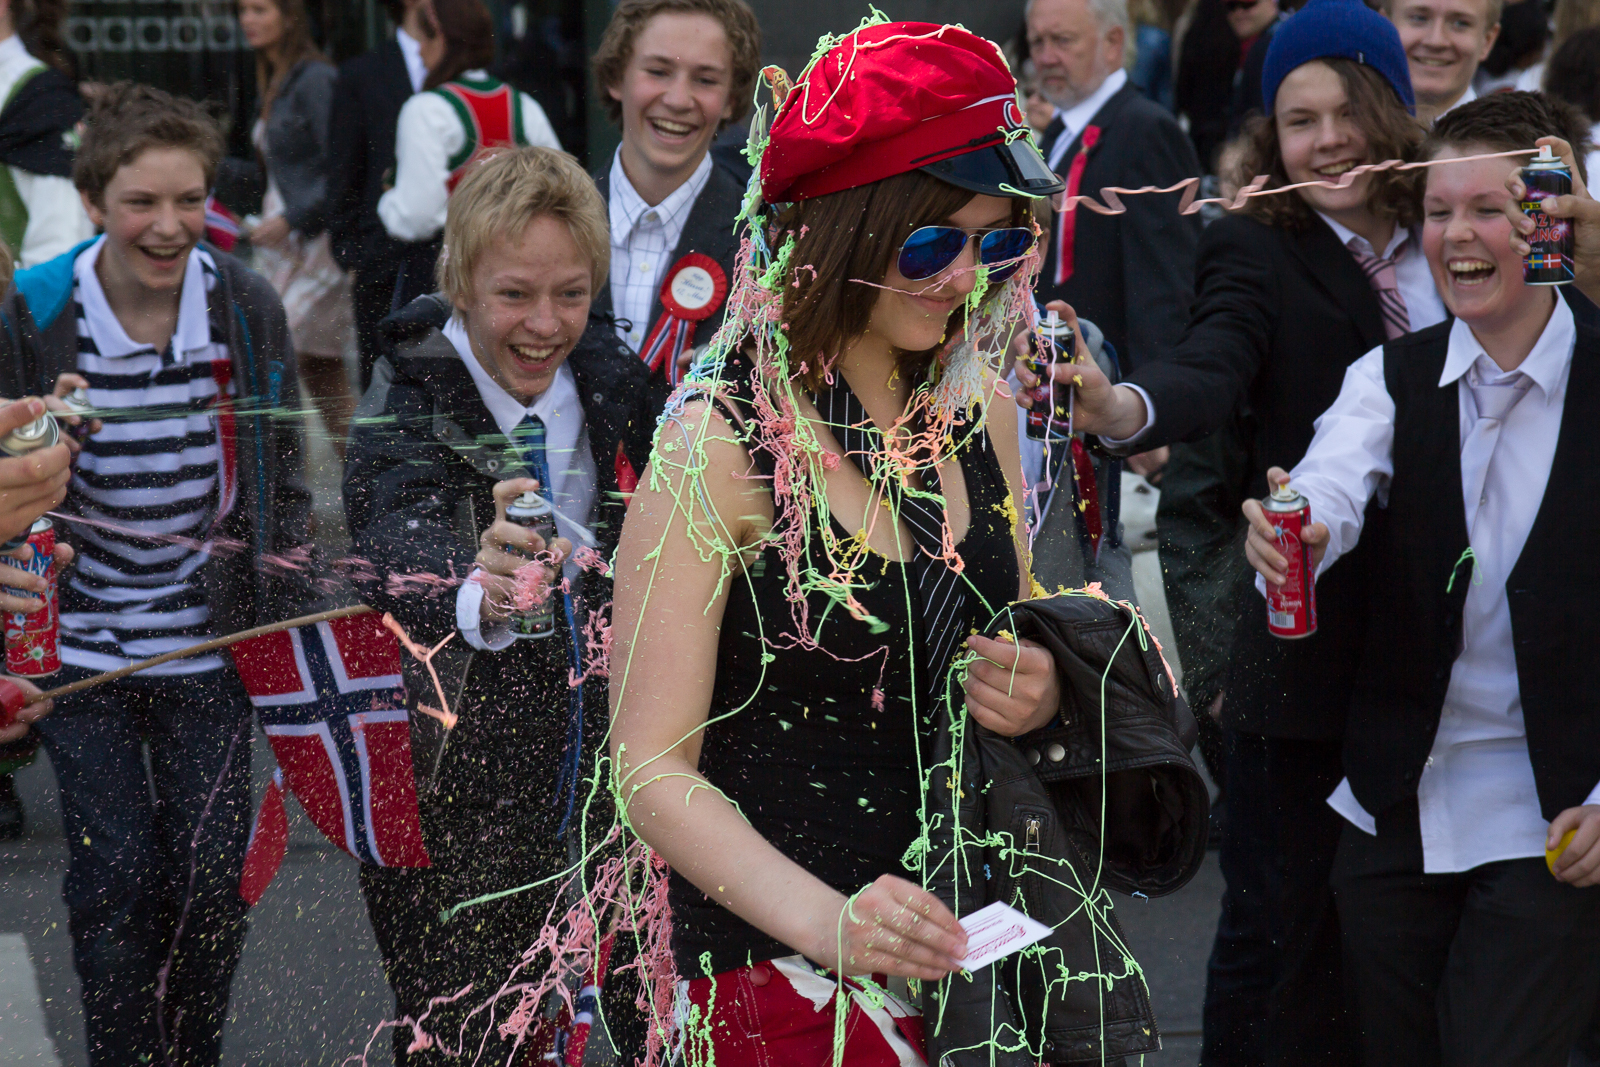 Constitution Day (May 17th), Oslo Norway (2011)